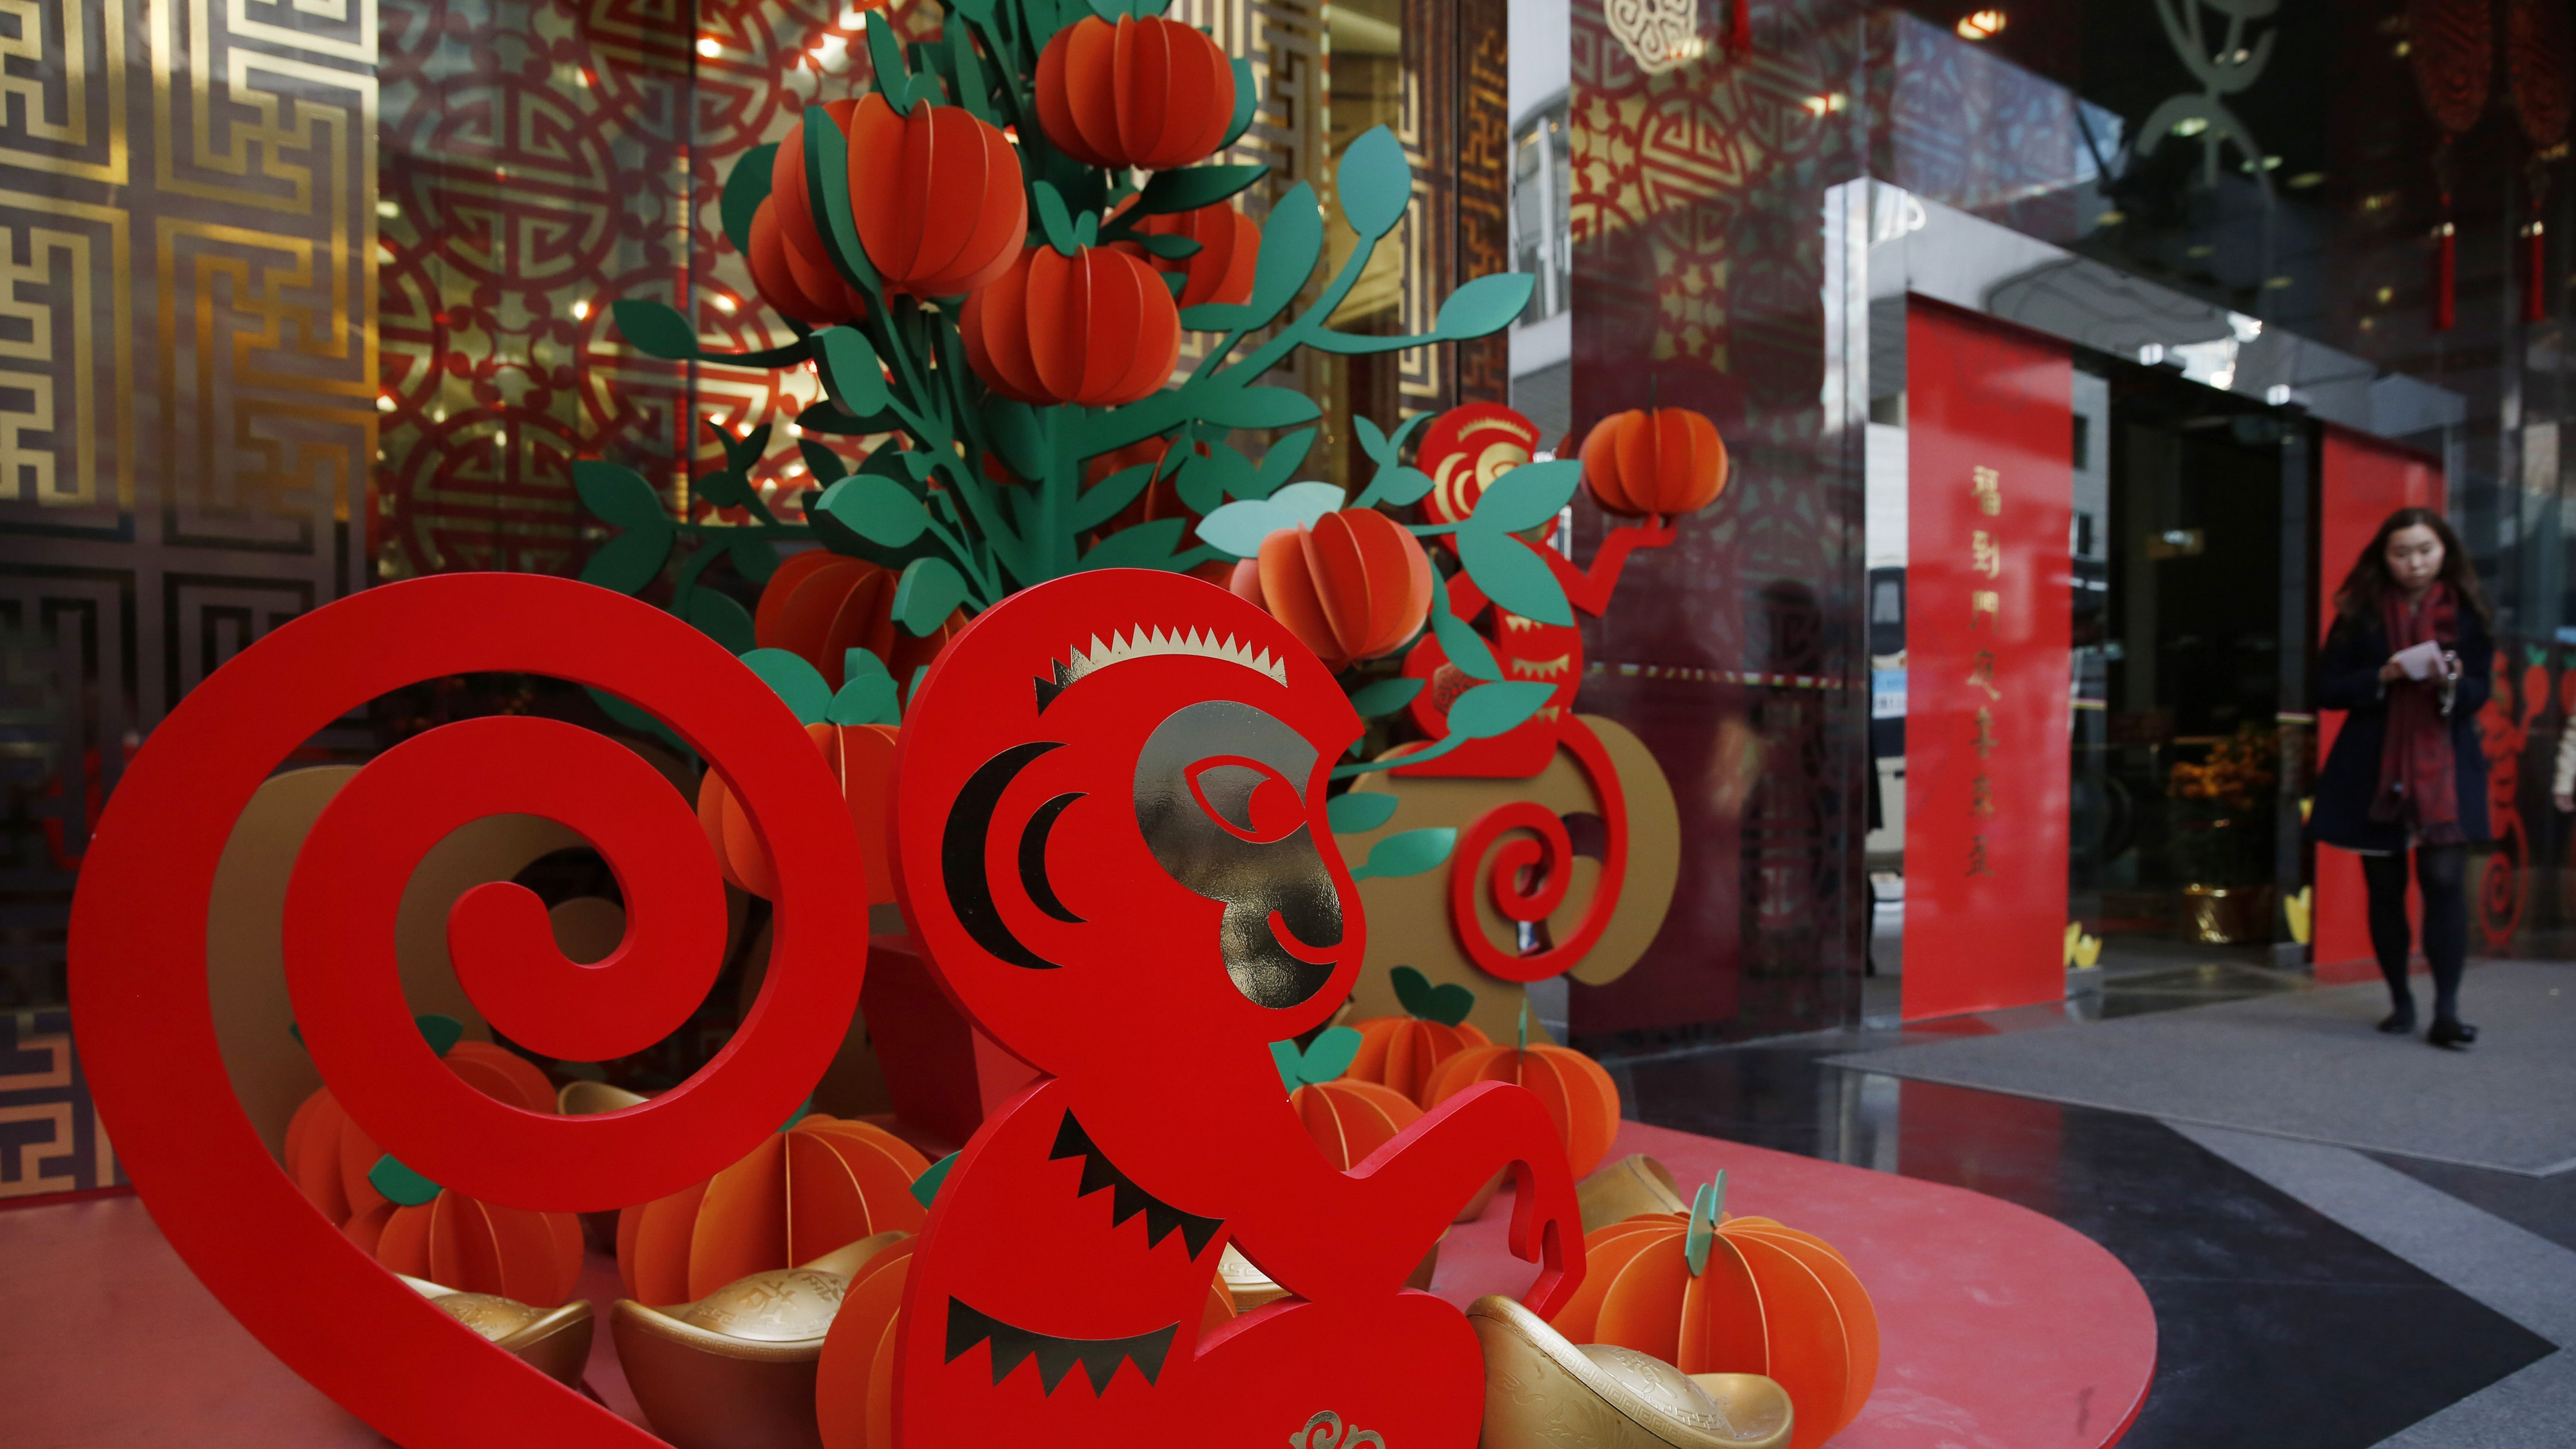 Chinese New Year decorations are placed outside a bank in Hong Kong, Thursday, Feb. 4, 2016. Chinese will celebrate the Lunar New Year on Feb. 8 this year, marking the start of the Year of Monkey on the Chinese zodiac.